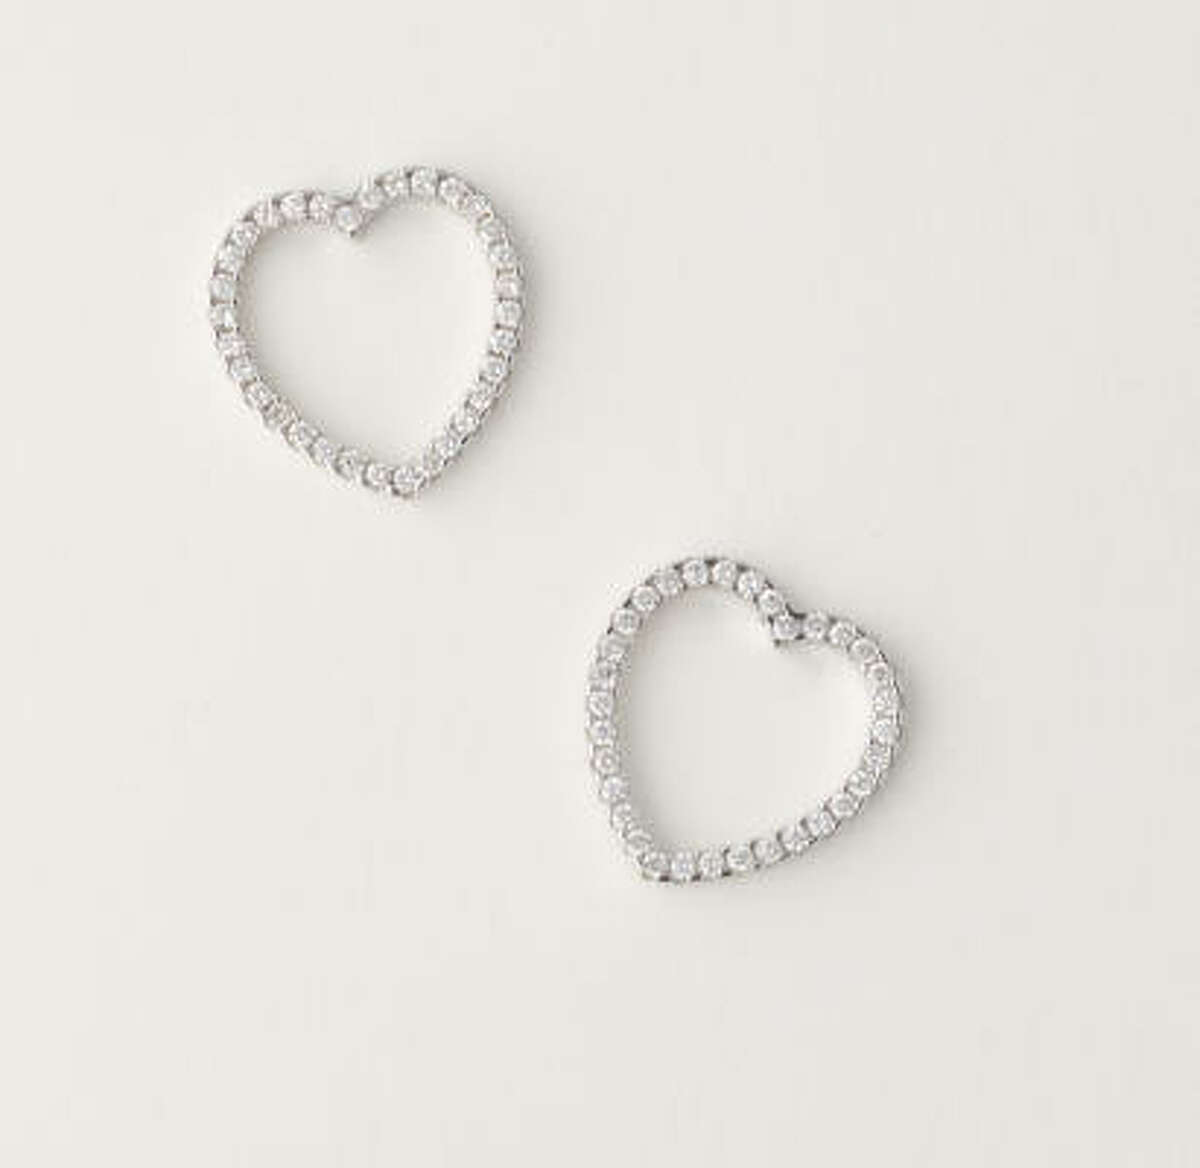 Earrings are good gift for a new relationship.